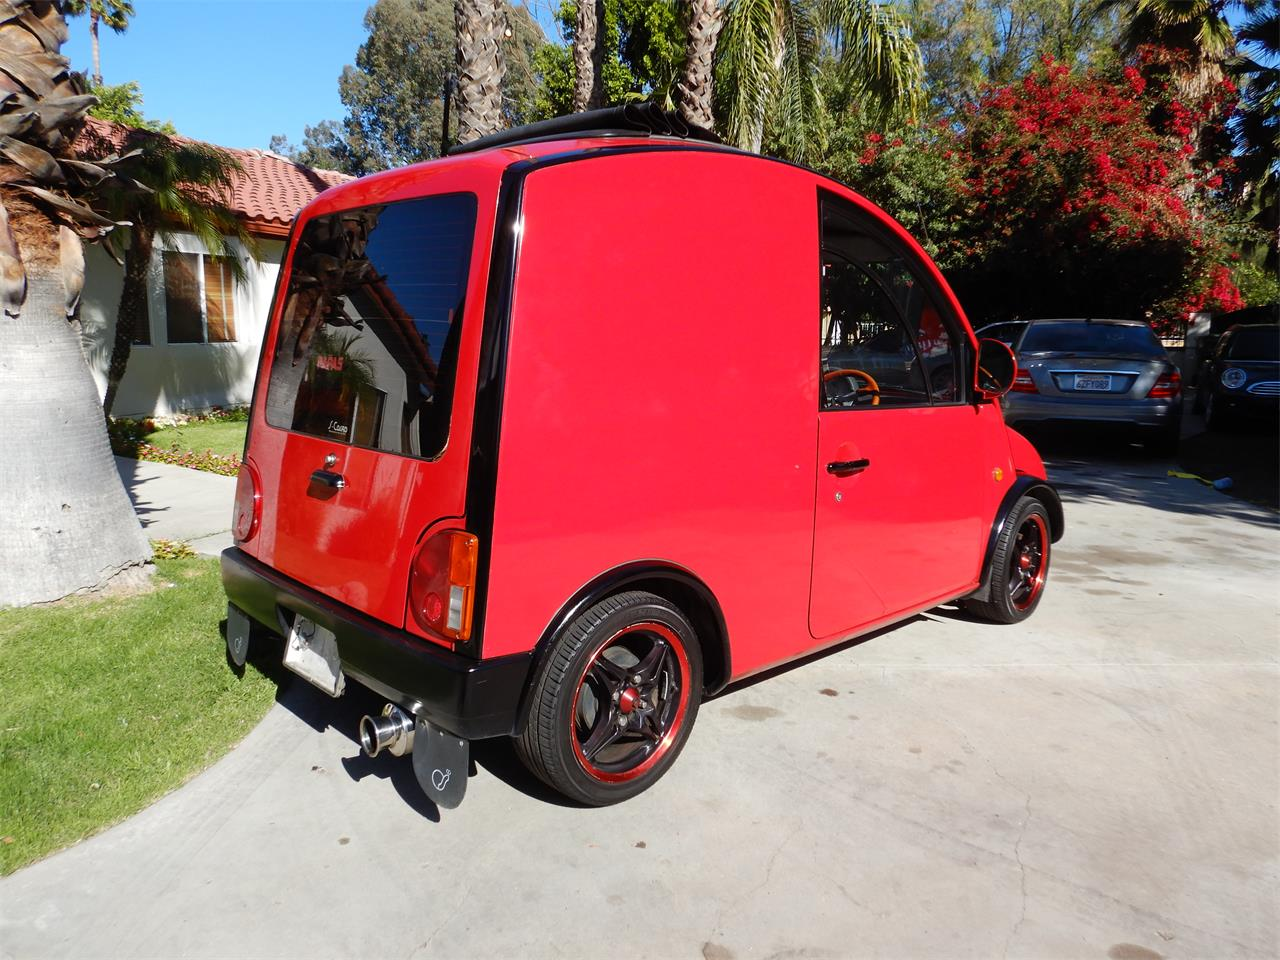 1989 Nissan Pao (CC-1067372) for sale in wOODLAND hILLS, California